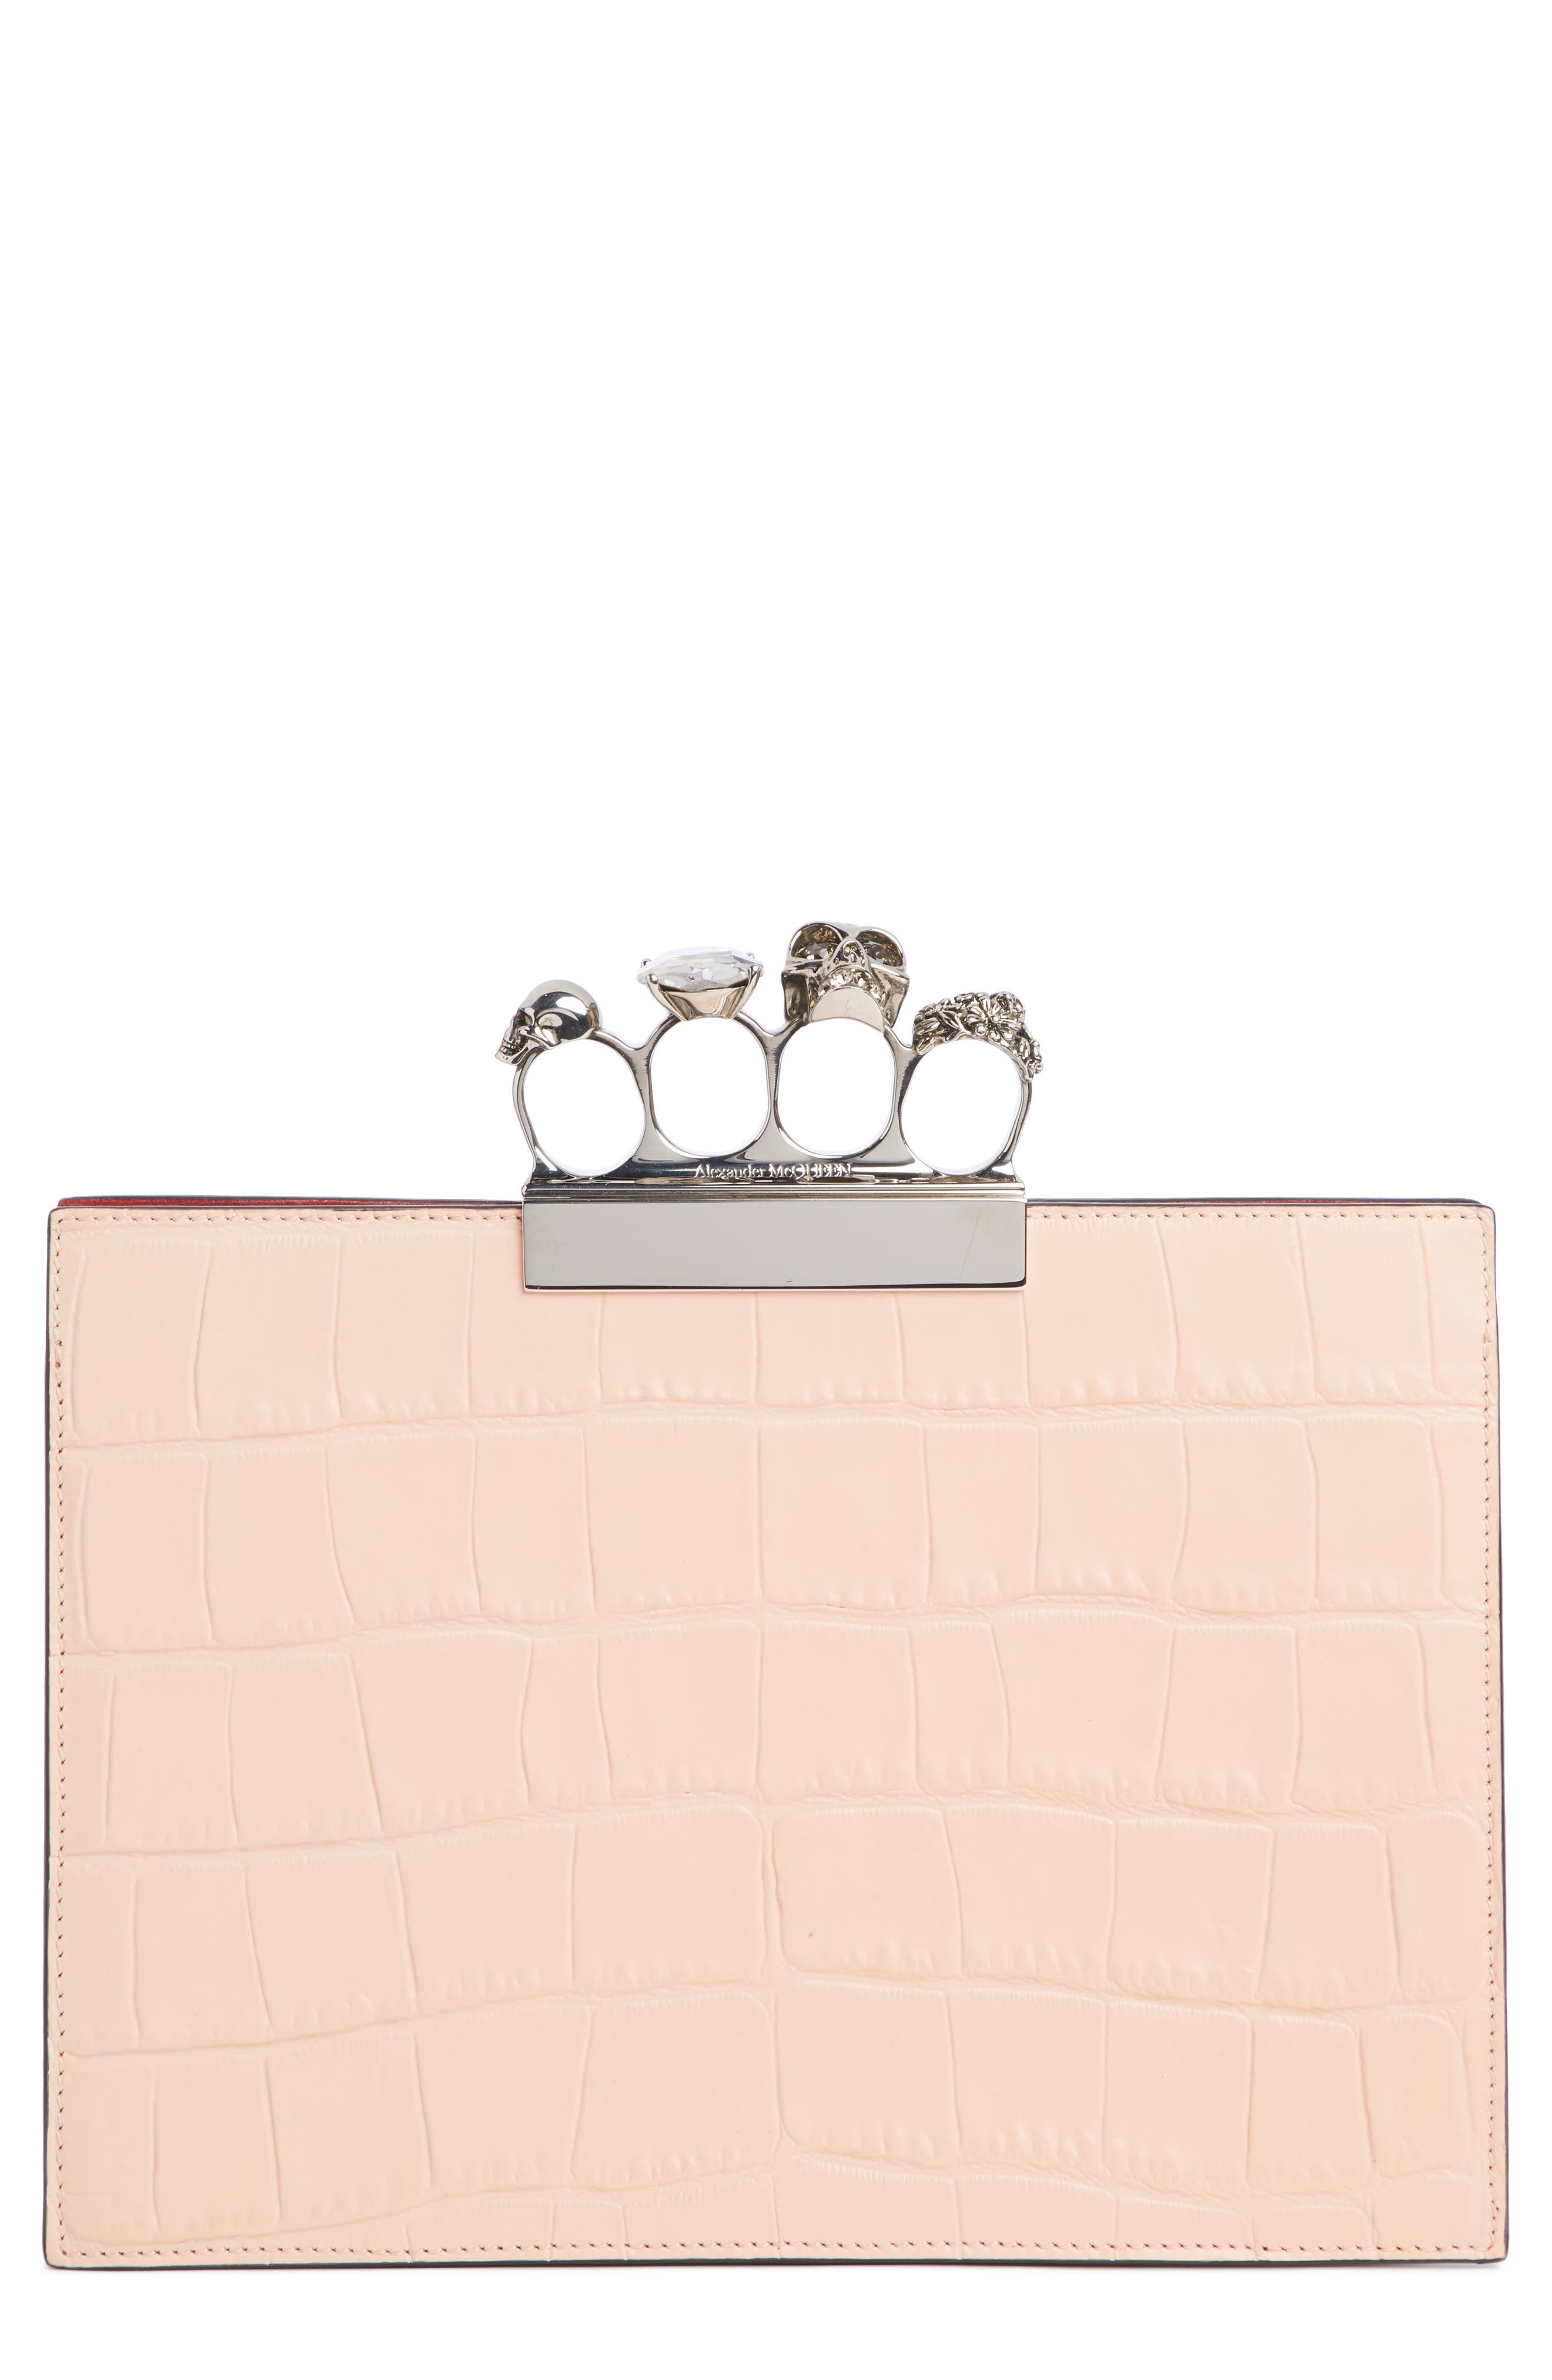 Croc Embossed Leather Knuckle Clutch,                         Main,                         color, COLURIE/ IVORY